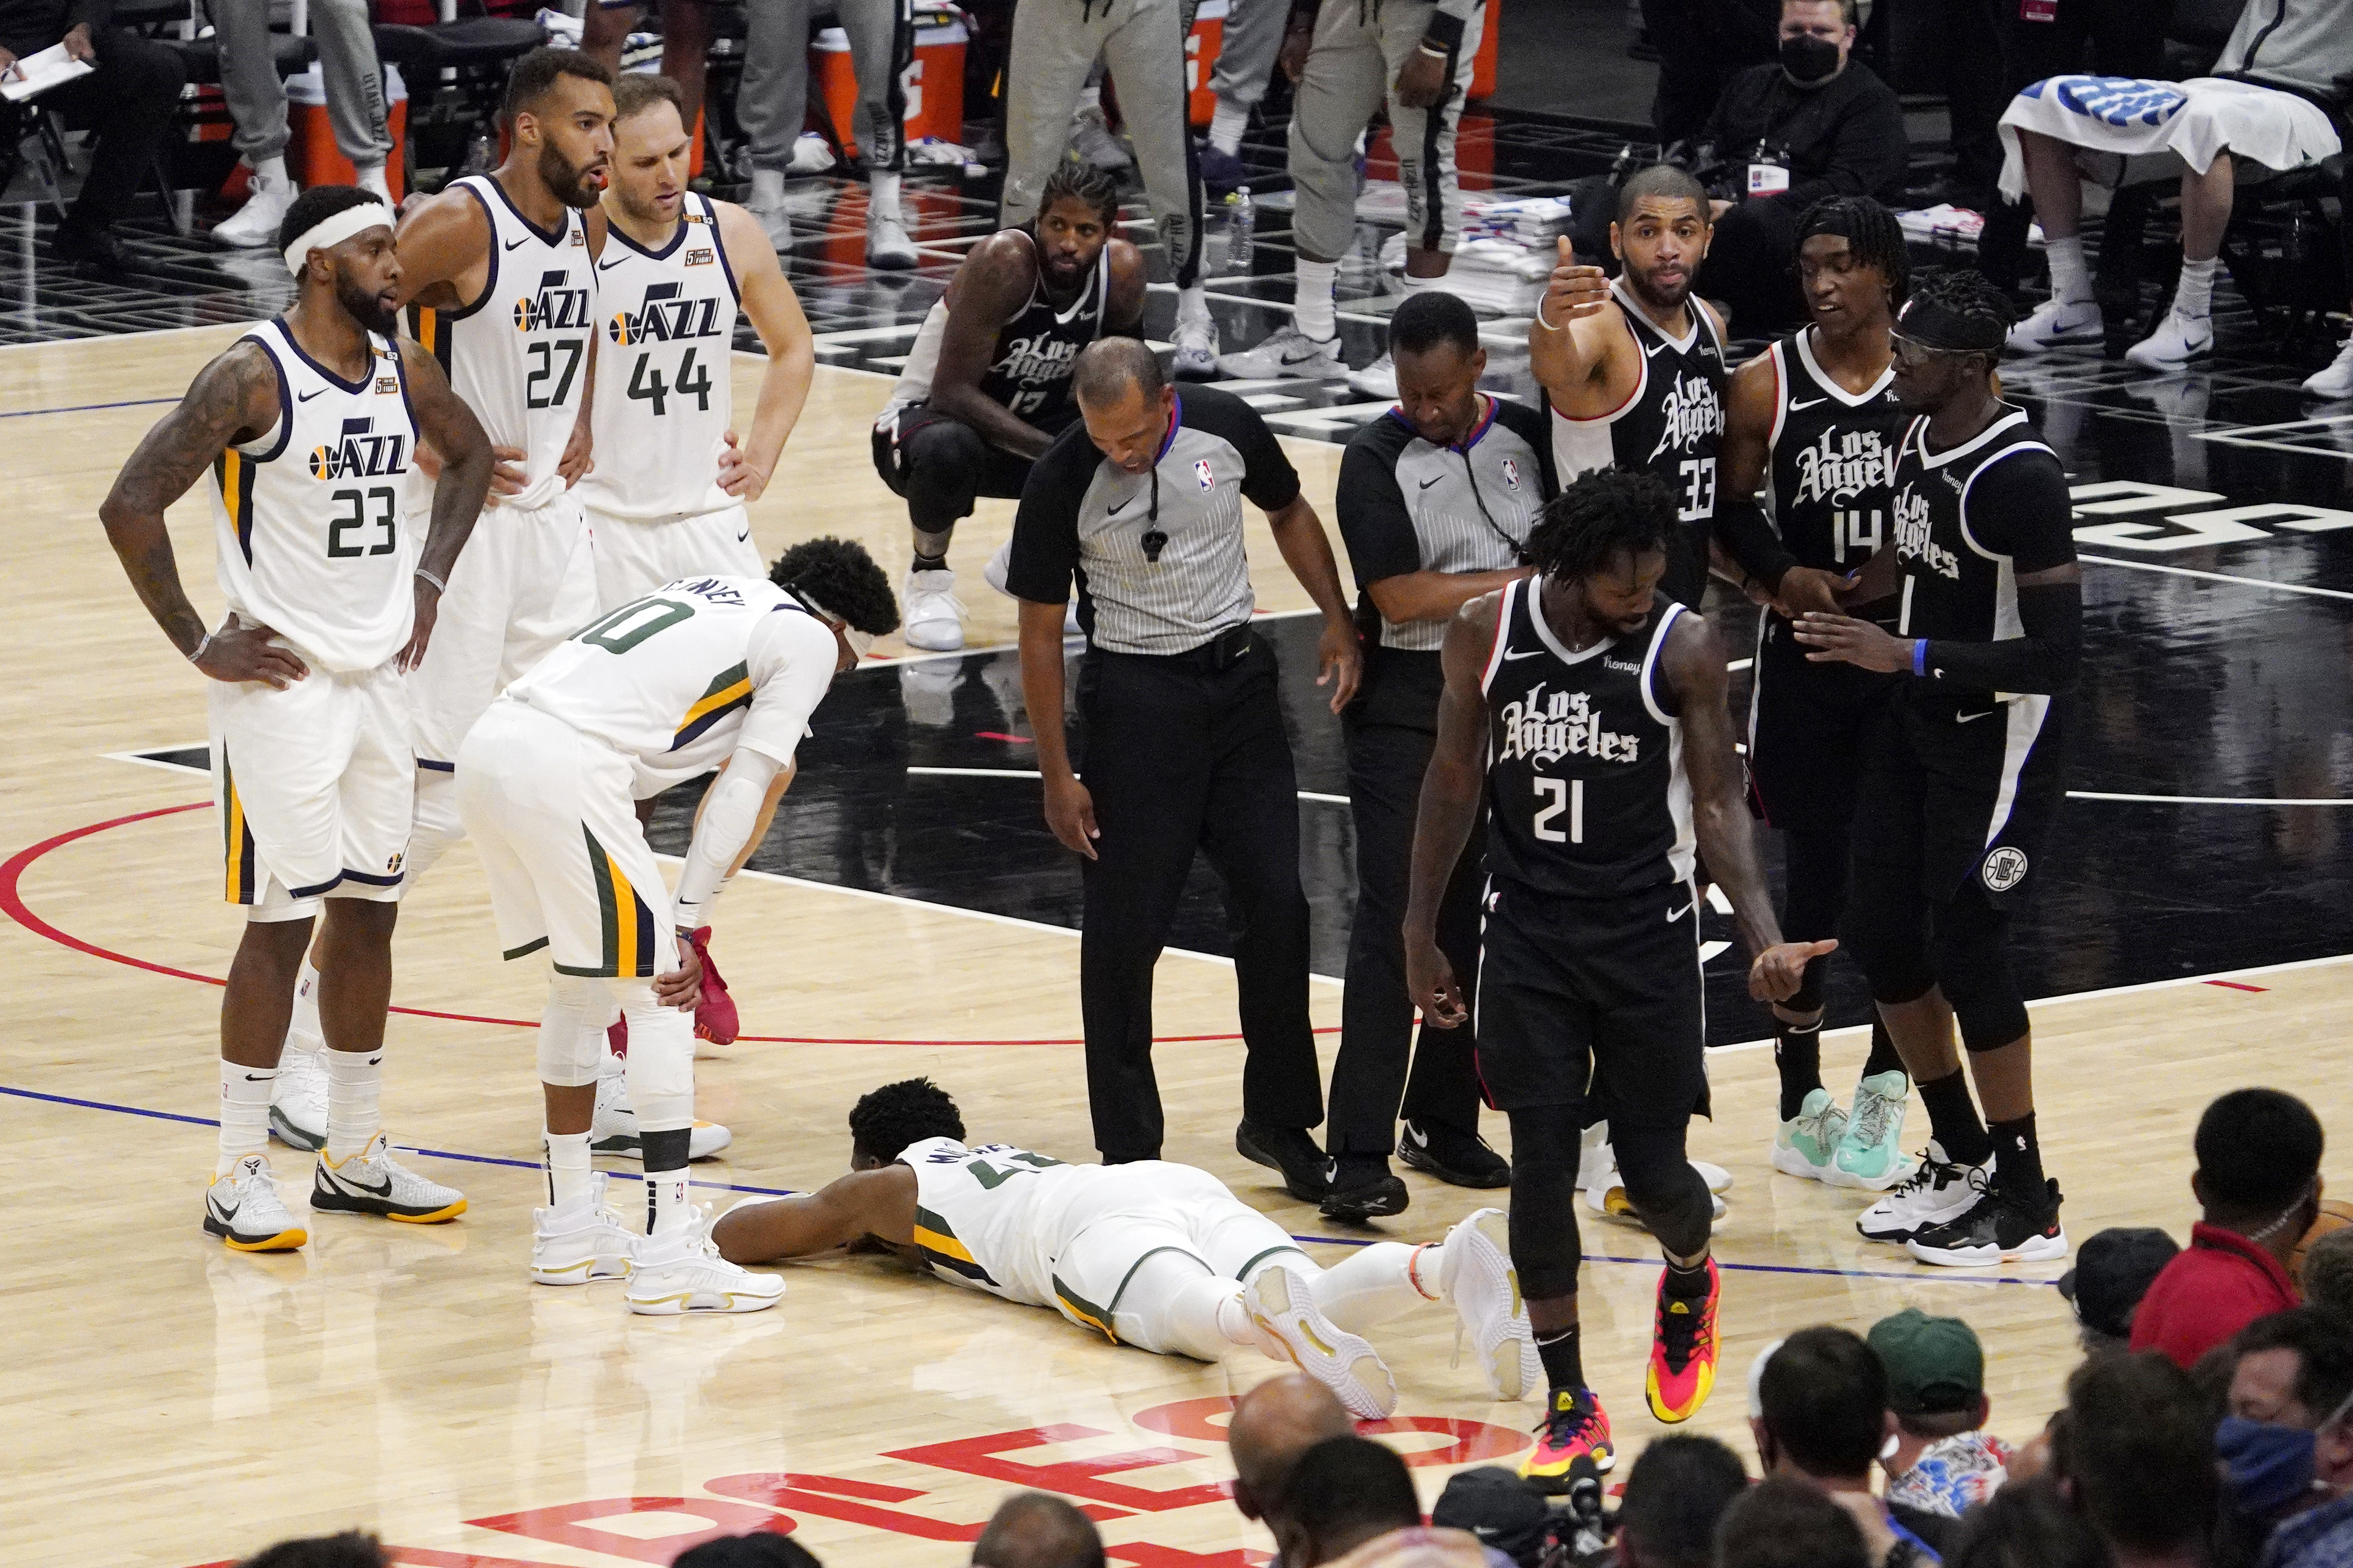 Utah Jazz guard Donovan Mitchell lays on the court, surrounded by members of the Utah Jazz and Los Angeles Clippers